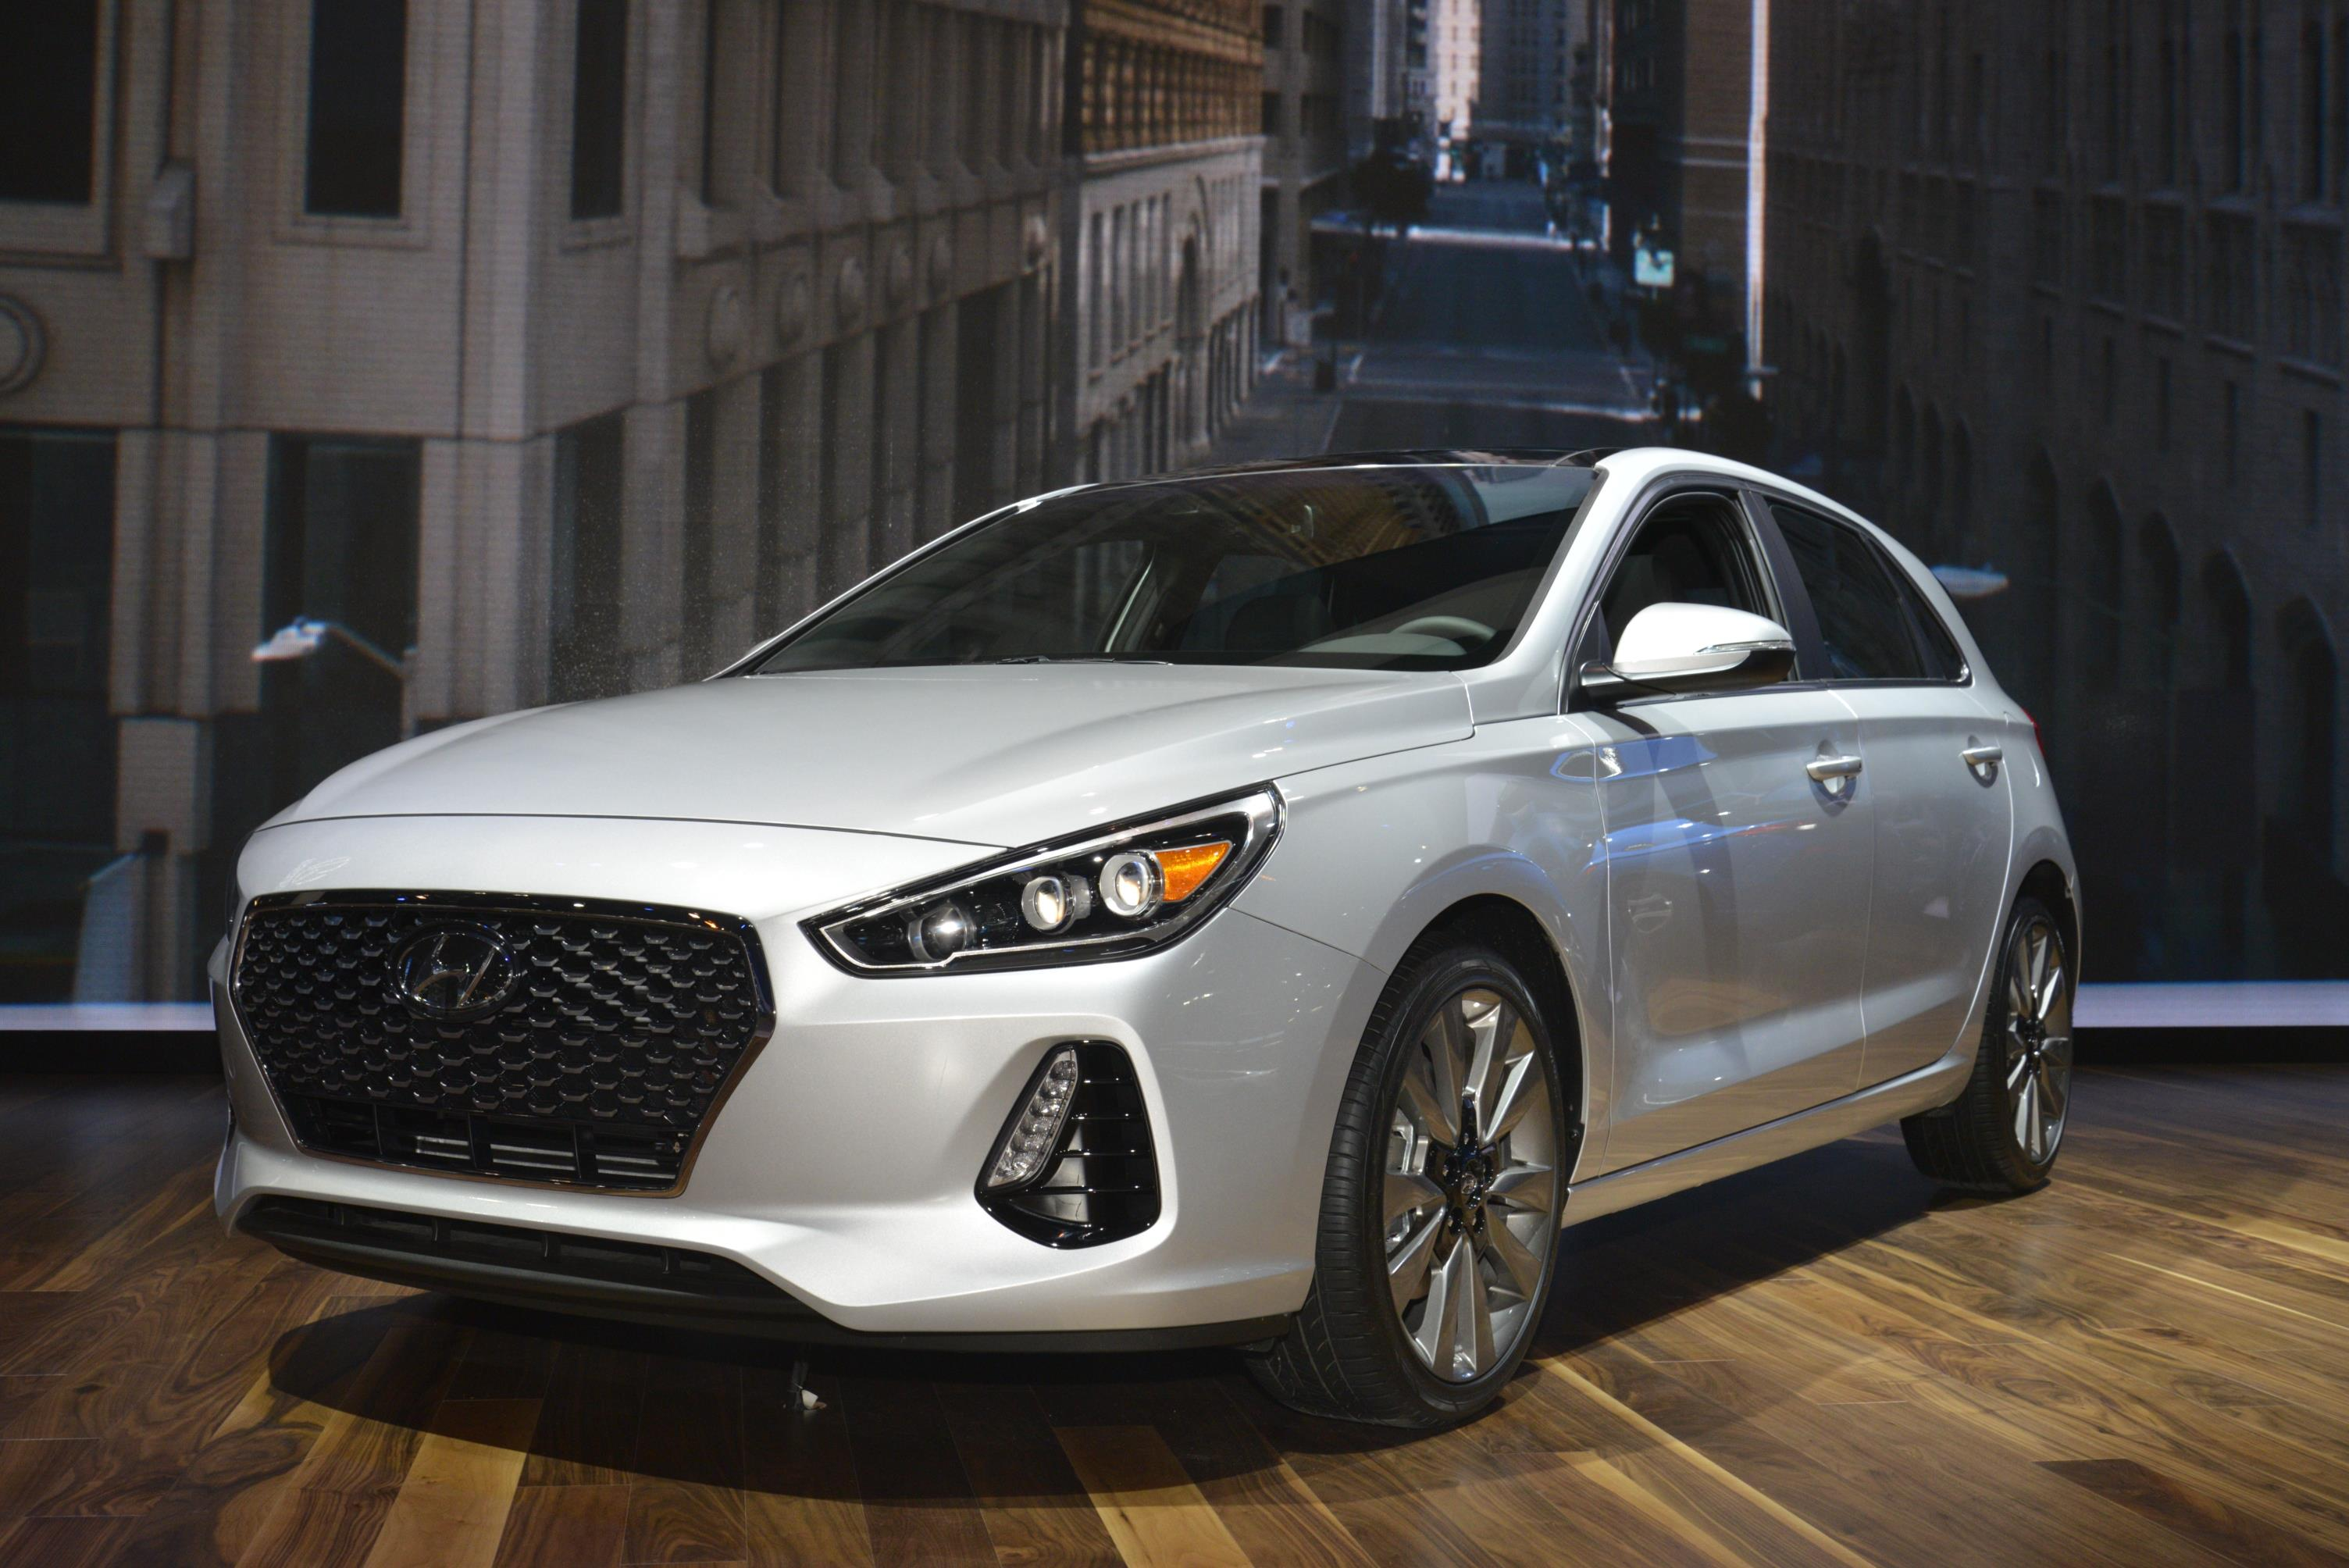 2018 Hyundai Elantra Gt Is The Most Powerful Euro Hatch